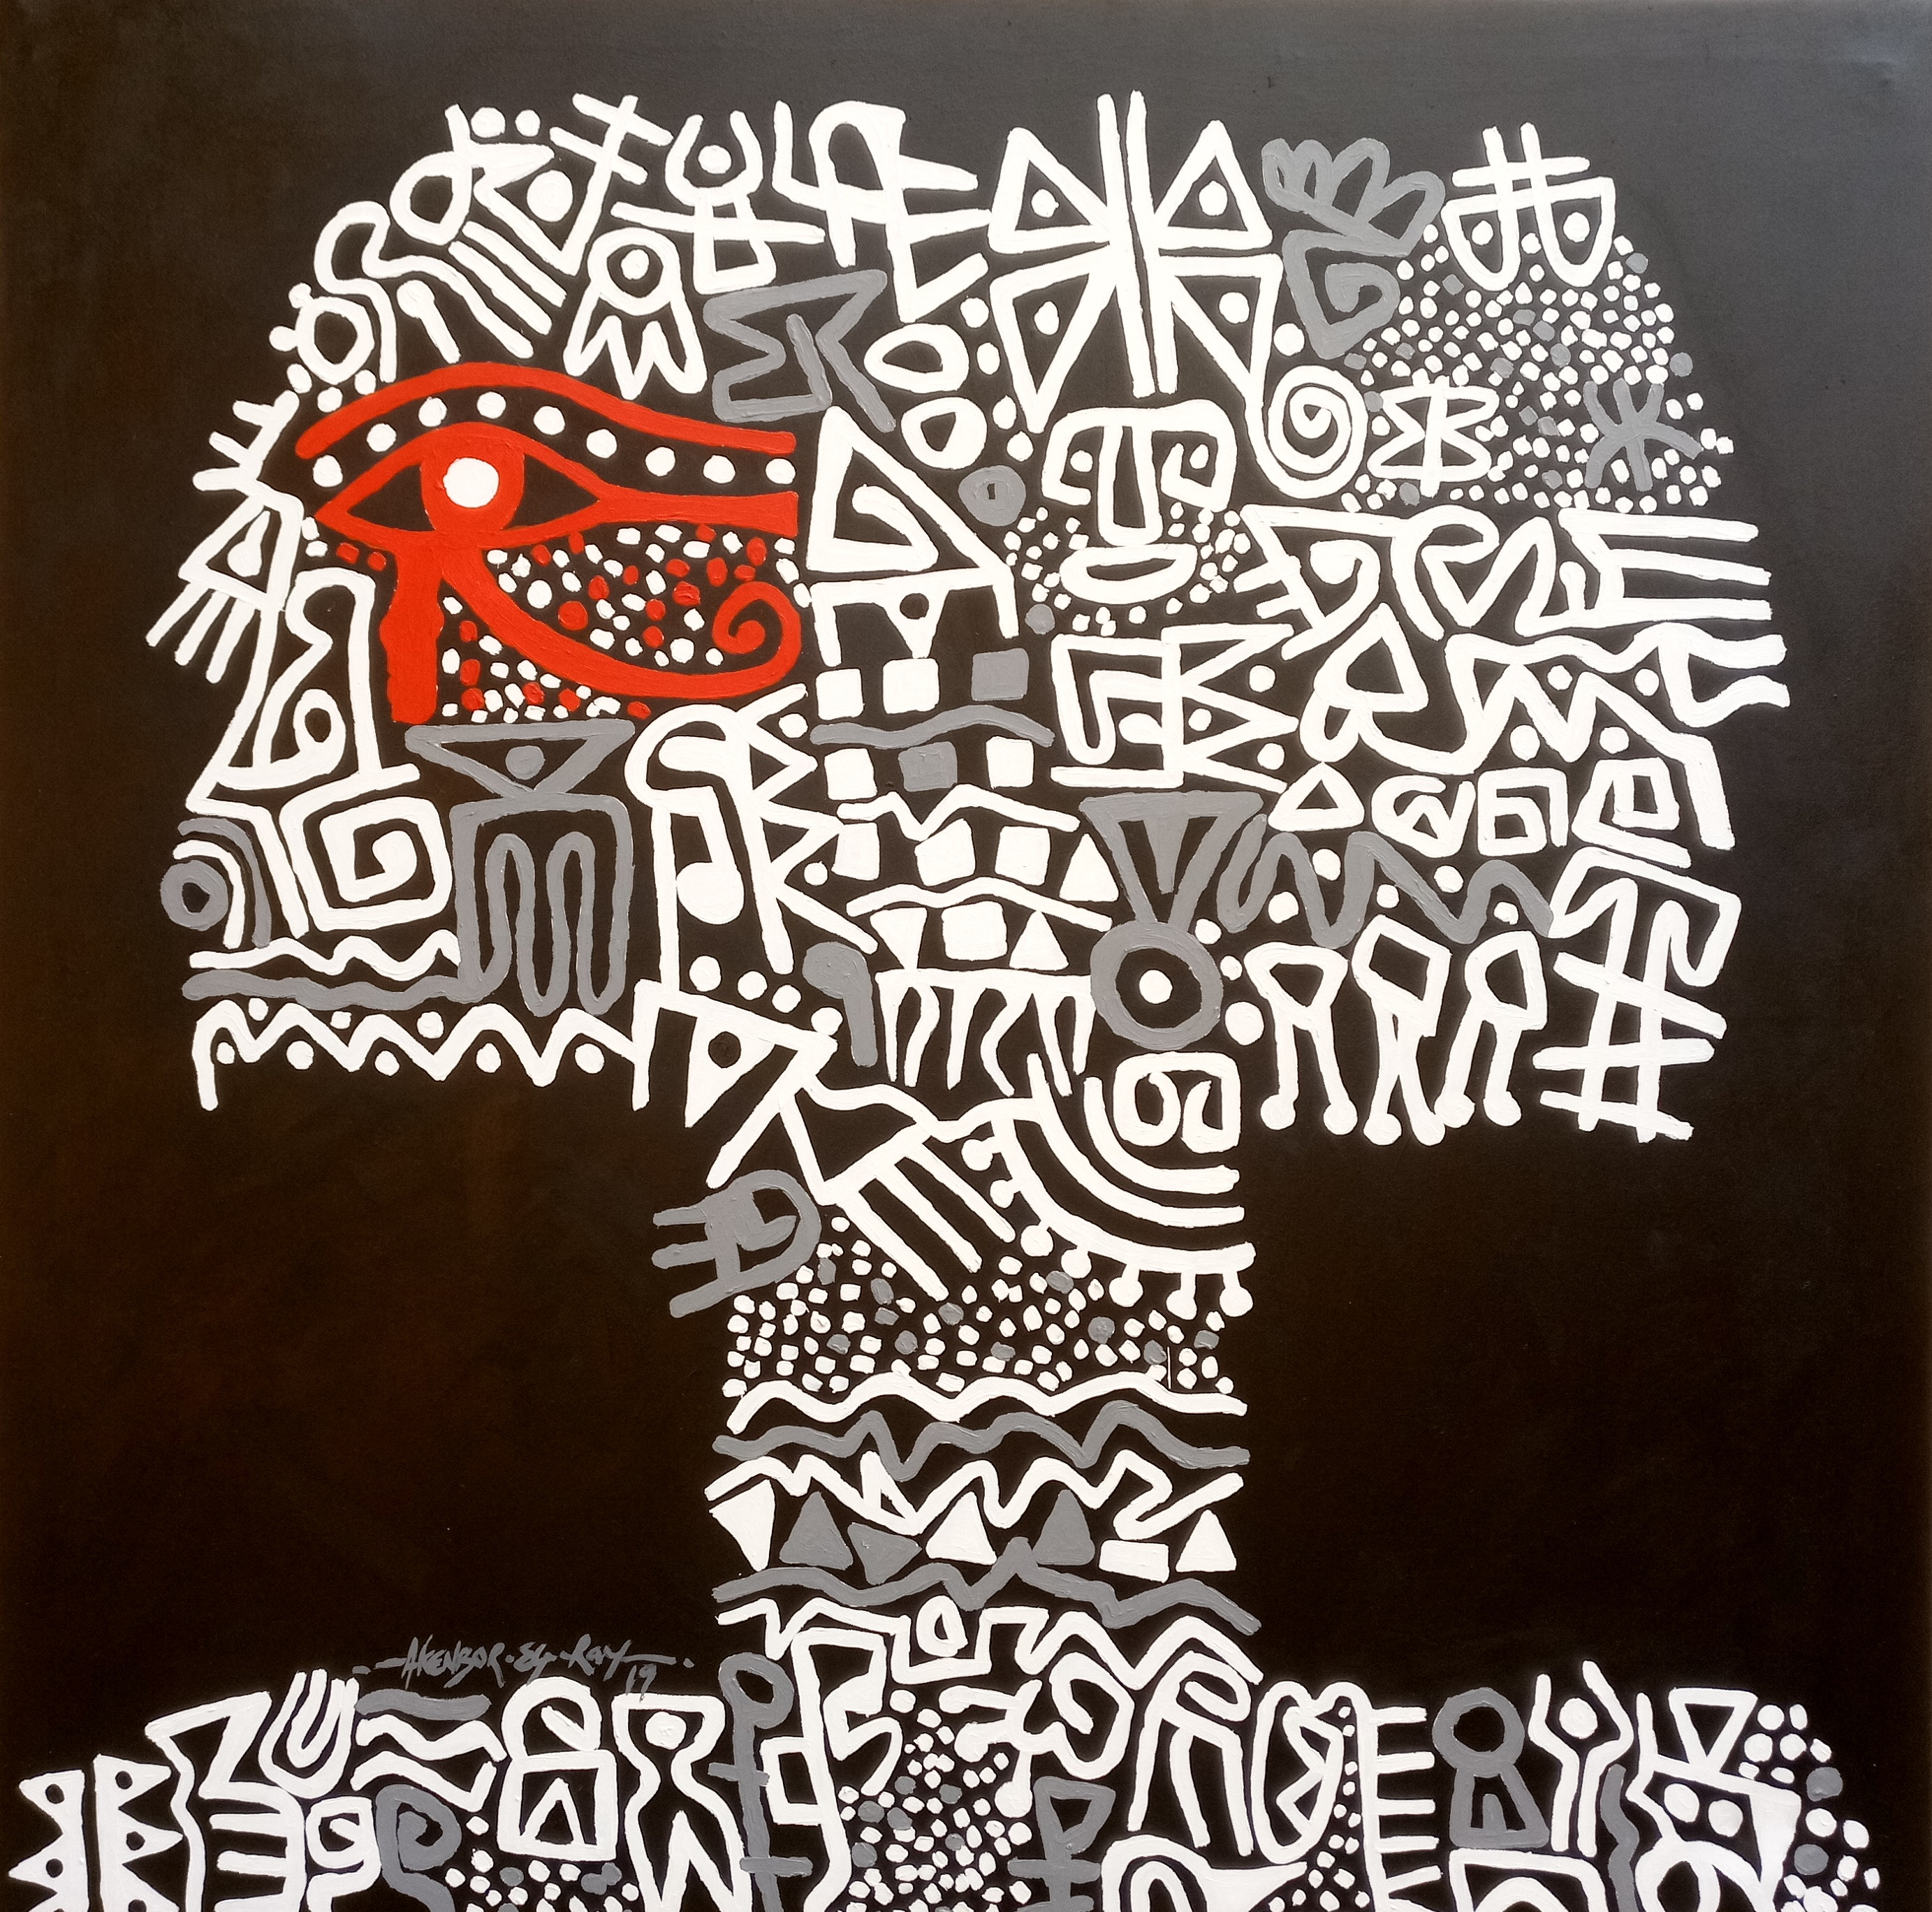 Painting Figure with African Patterns, Symbols, Motifs